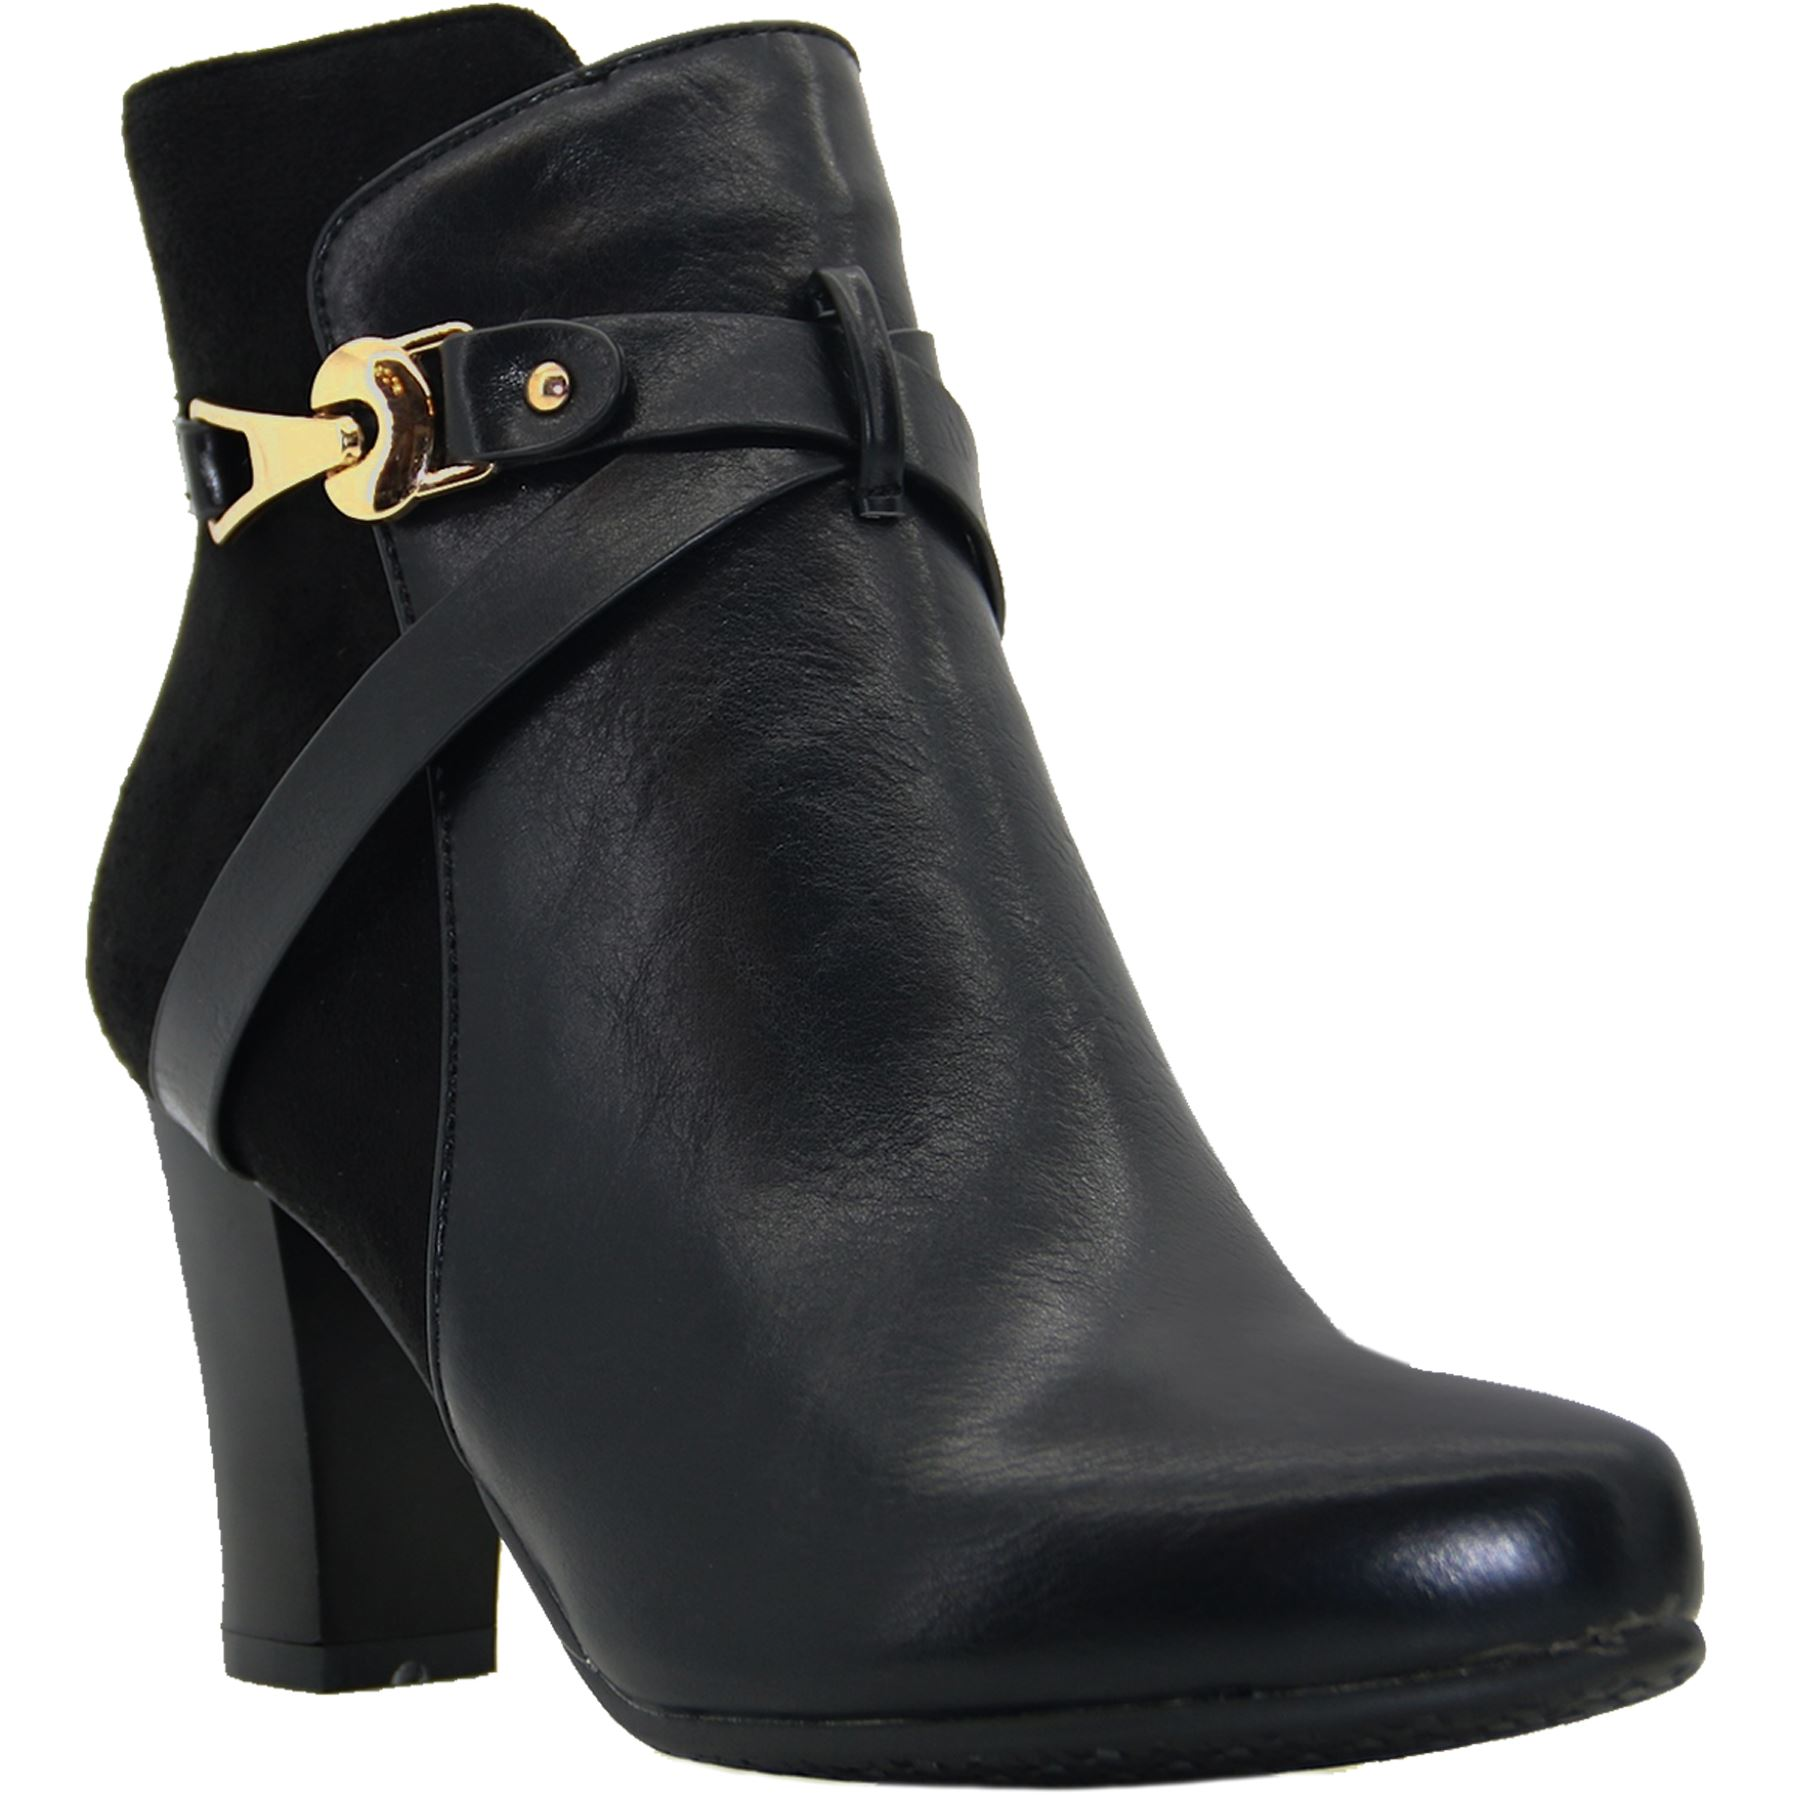 Ankle Strap Black Faux Cross Pointed Capri Contrast Leather Glc532 Boots Smart Suede qwz0BPg